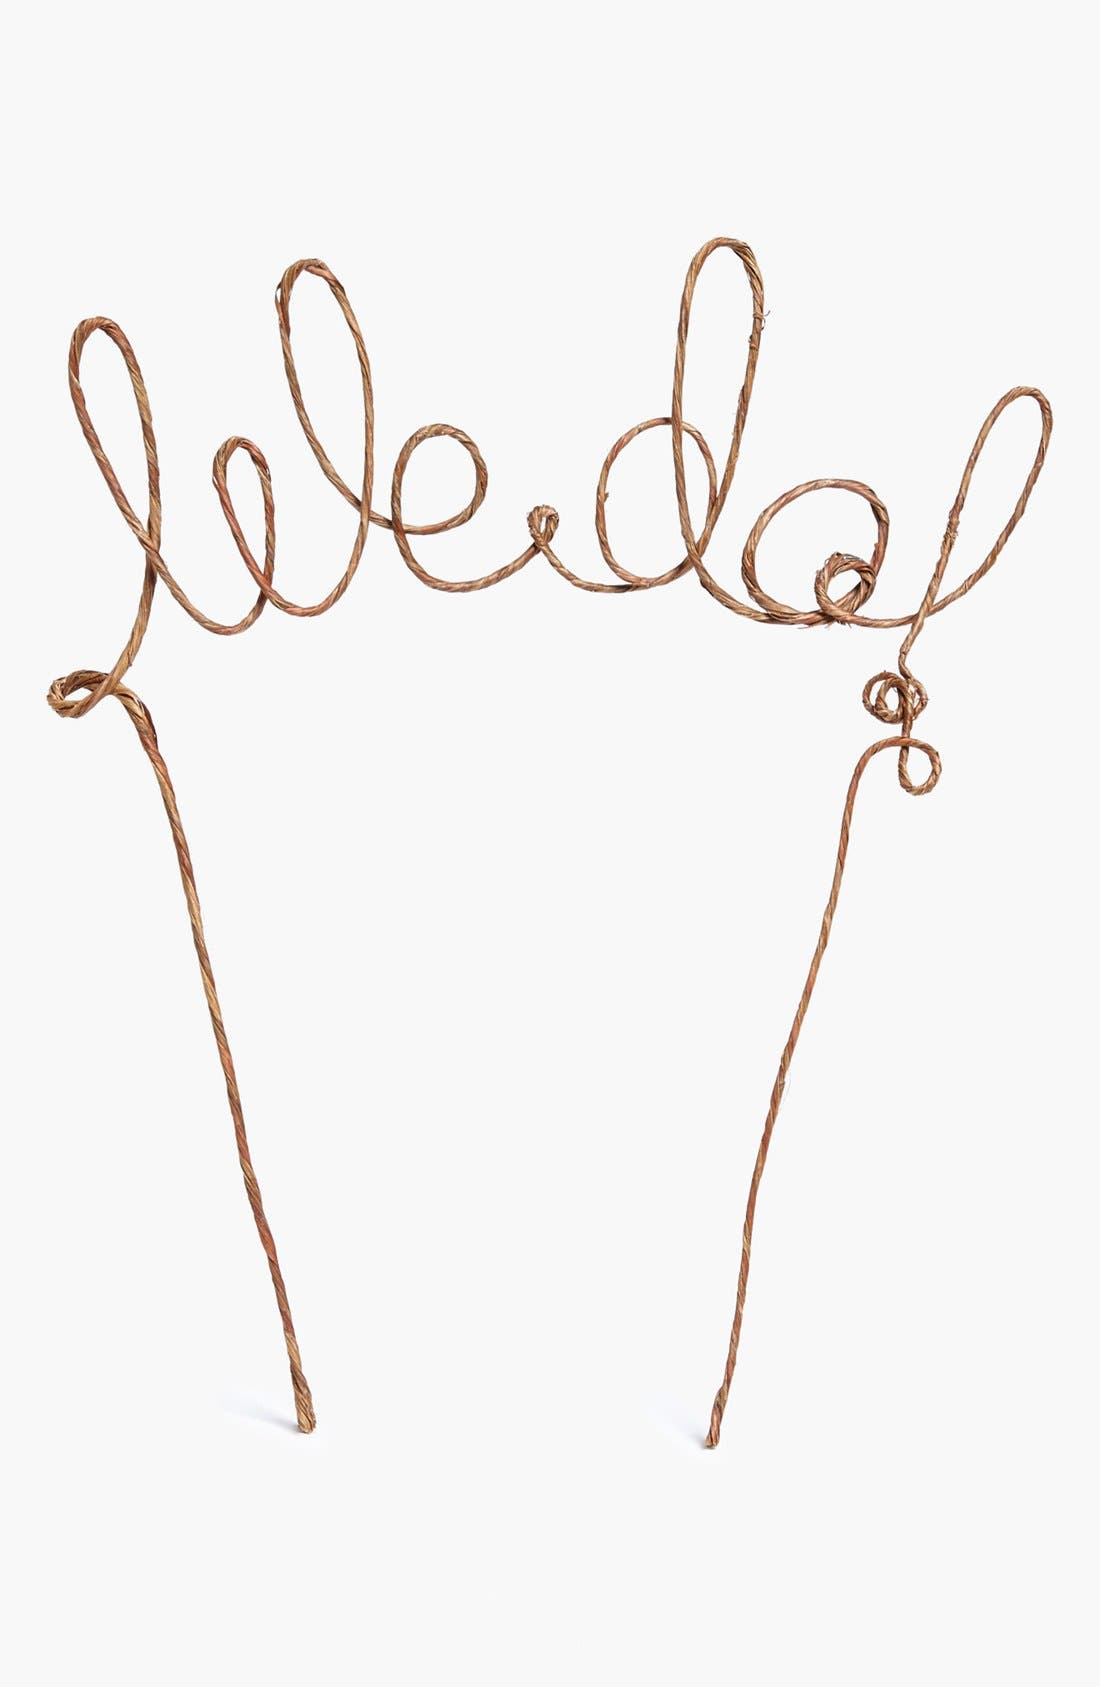 'We Do' Rustic Cake Topper,                             Alternate thumbnail 2, color,                             200